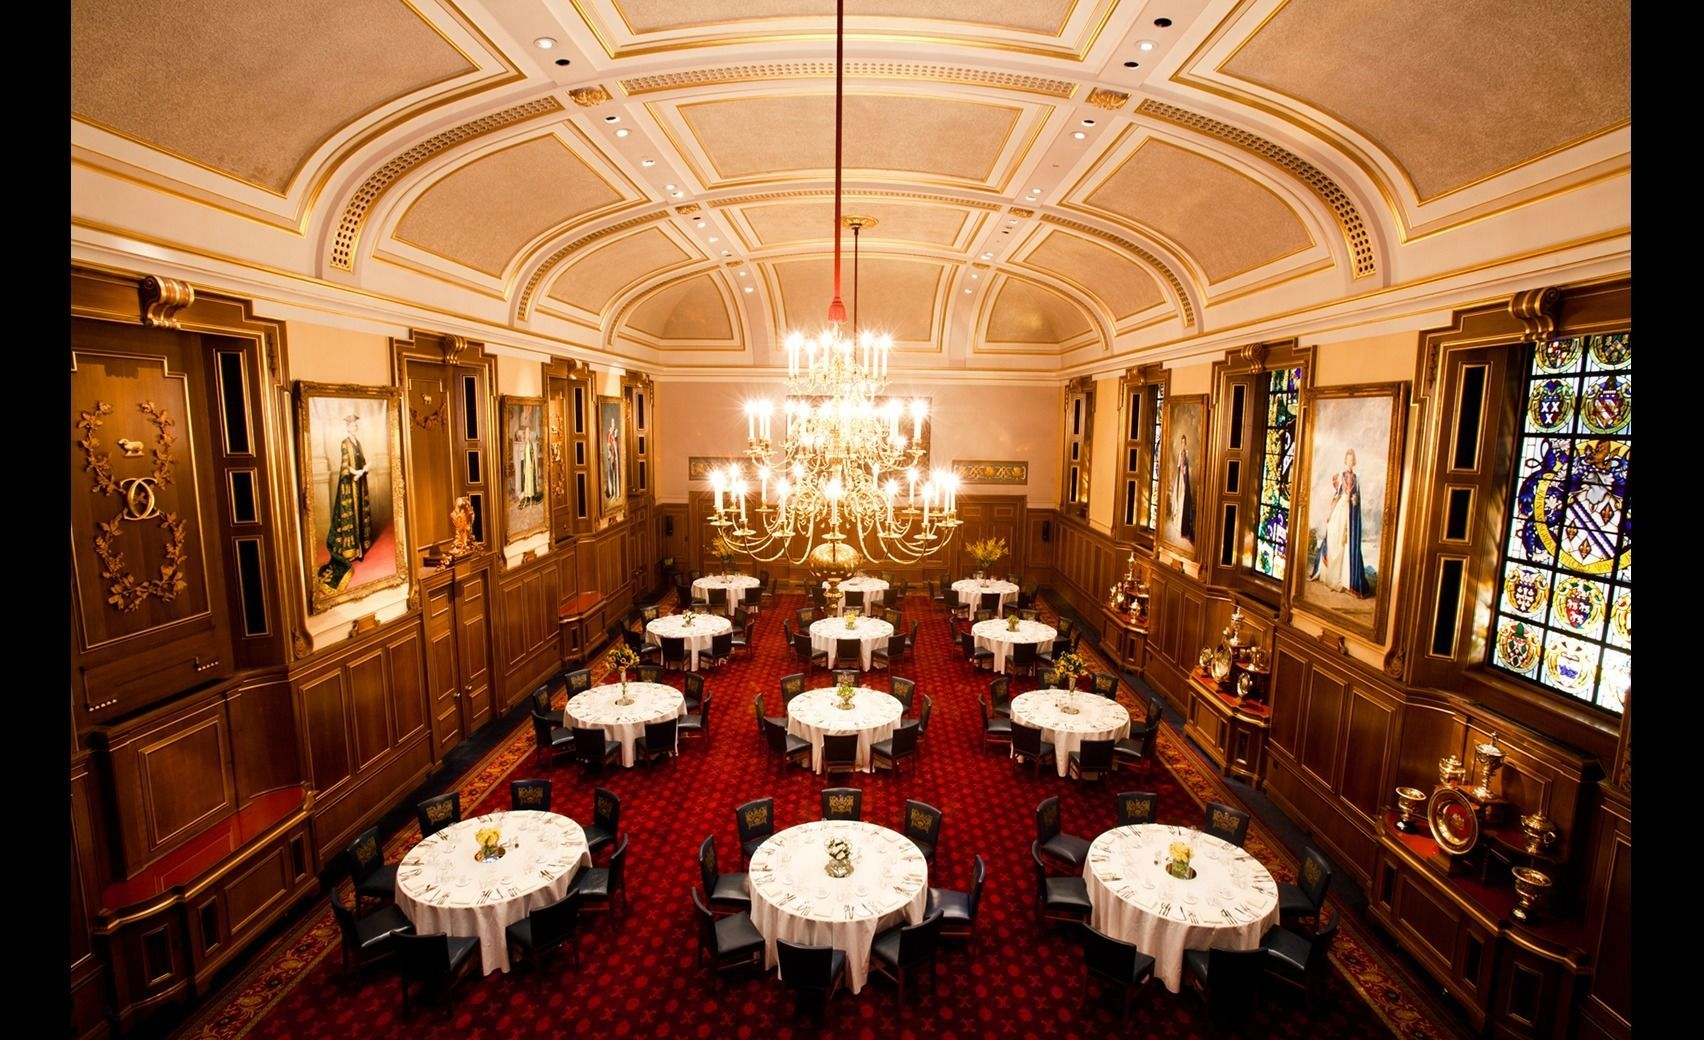 A large livery hall that has circular tables and red carpet